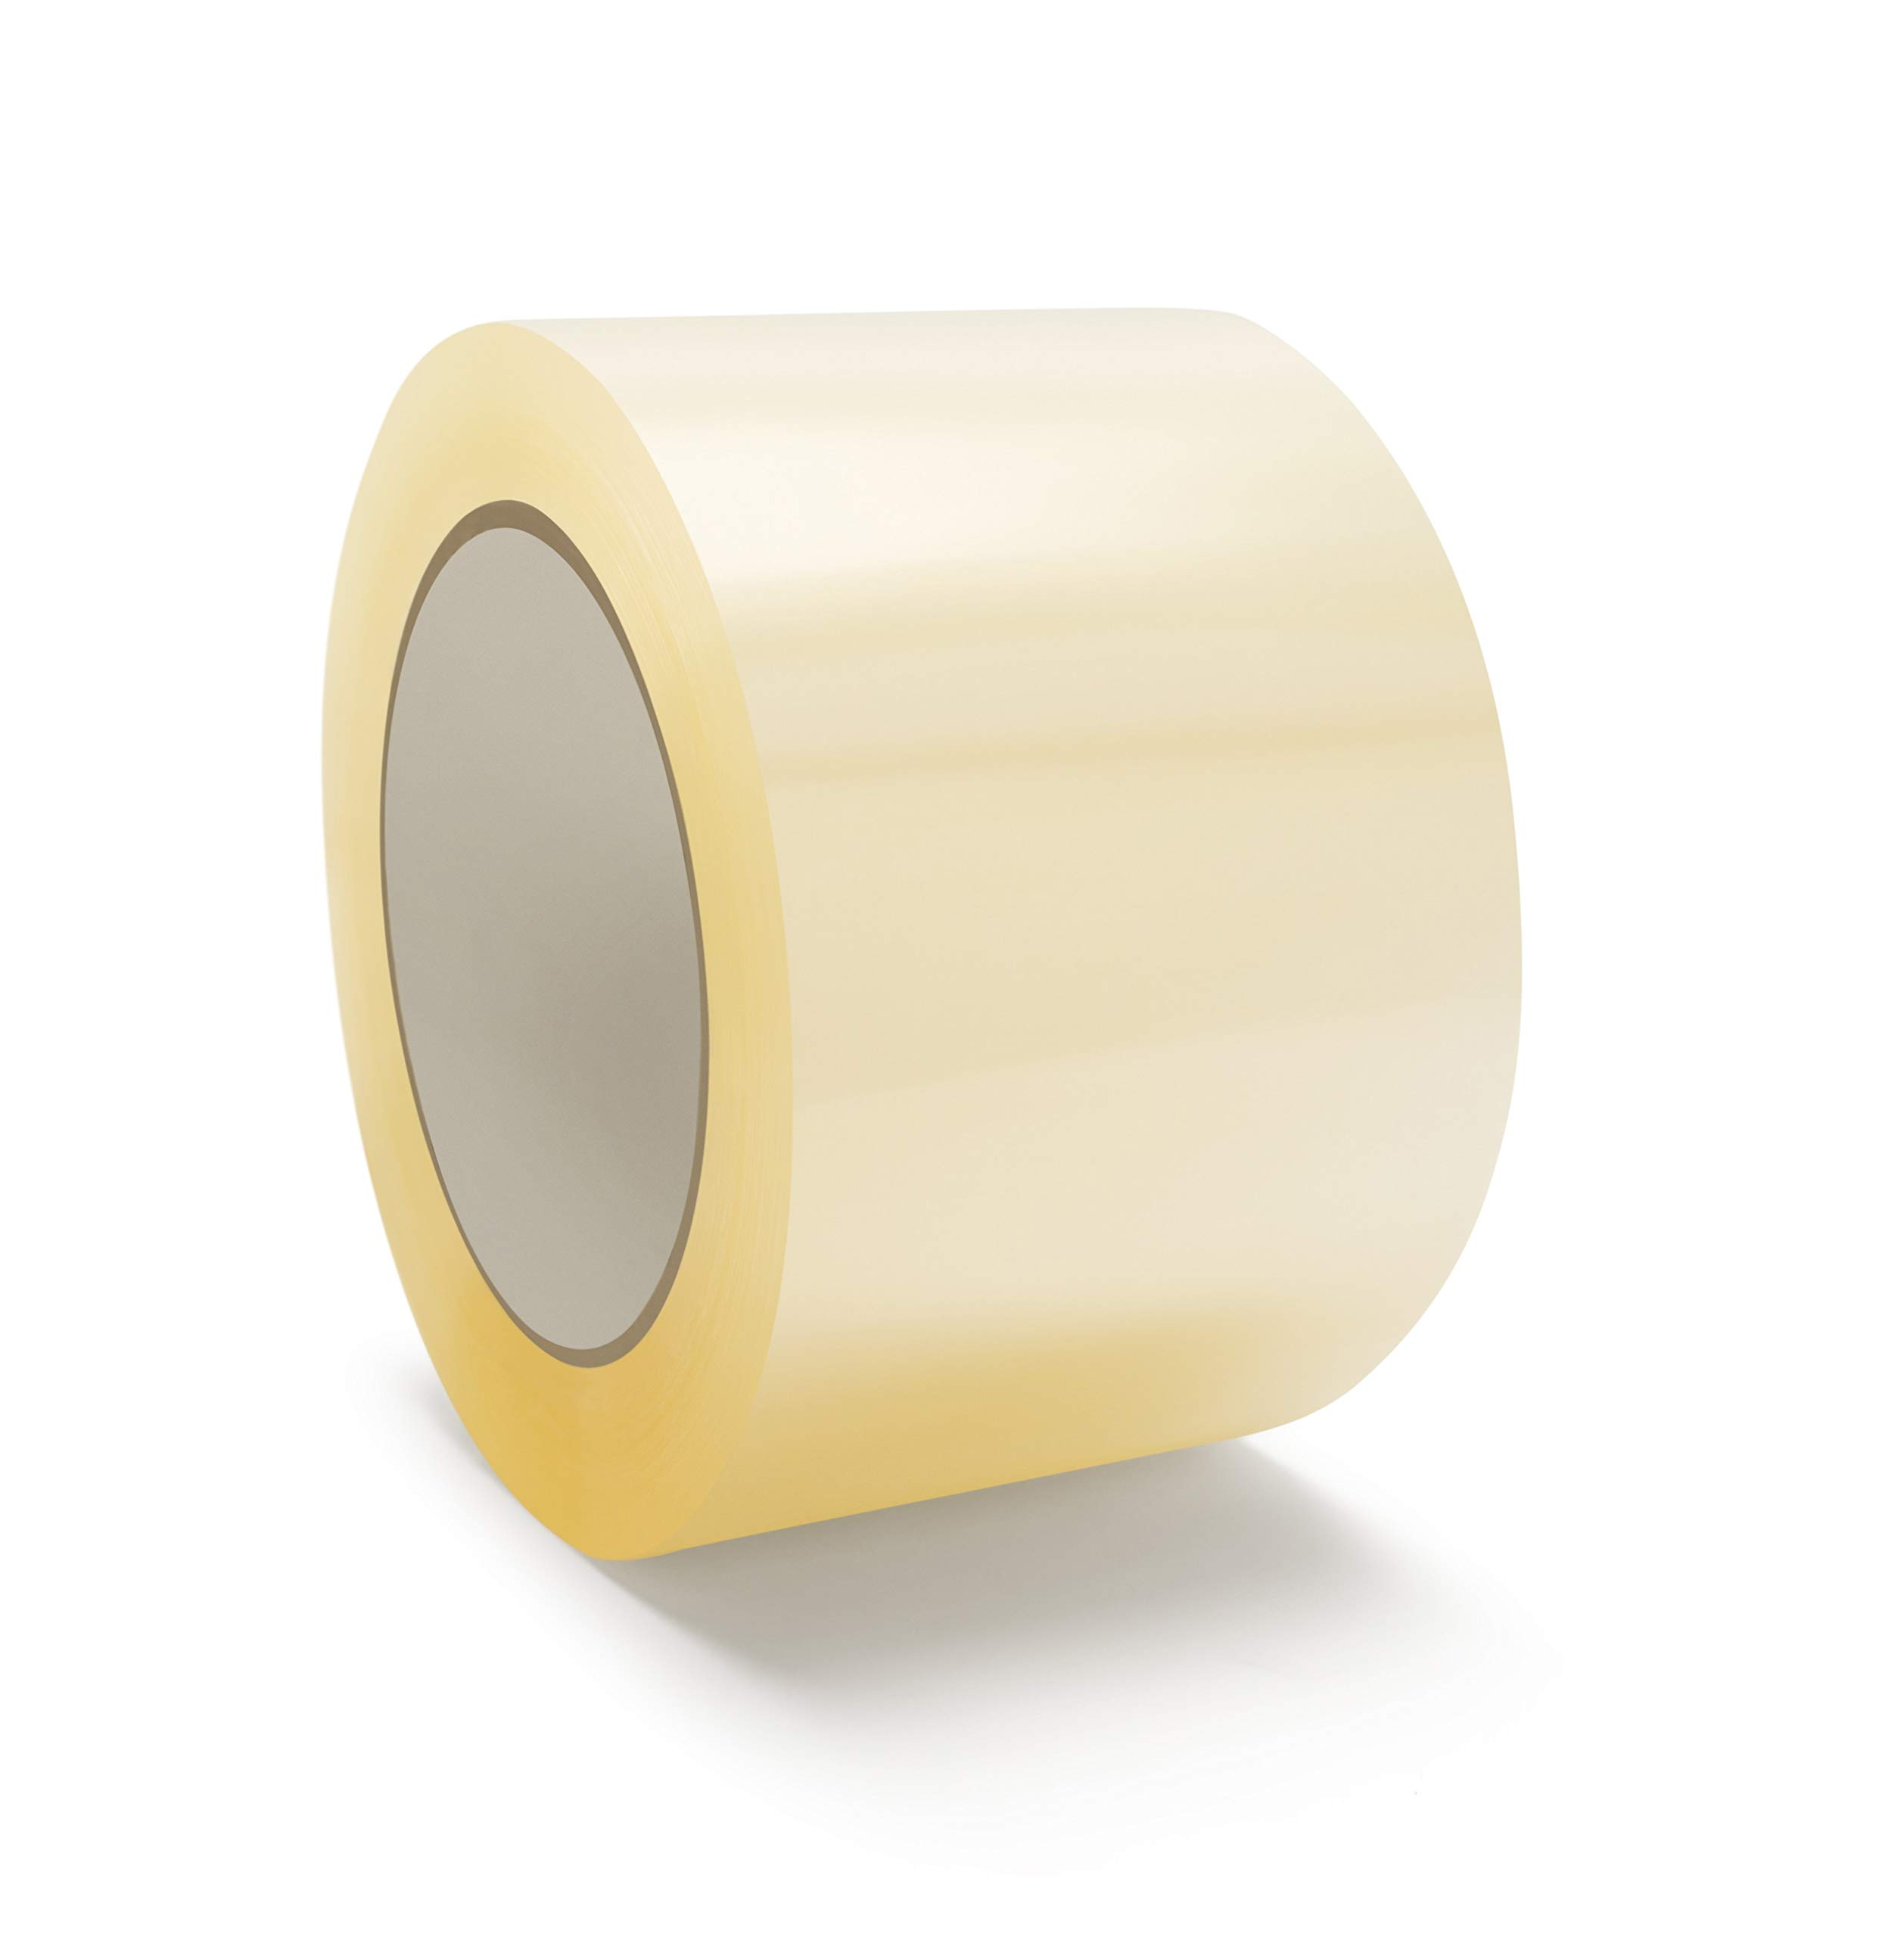 Industrial Tape 96 Rolls Clear Packaging, Packing, Carton Sealing Tapes - 3 Inches Wide x 330 Feet 1.75 Mil Thick